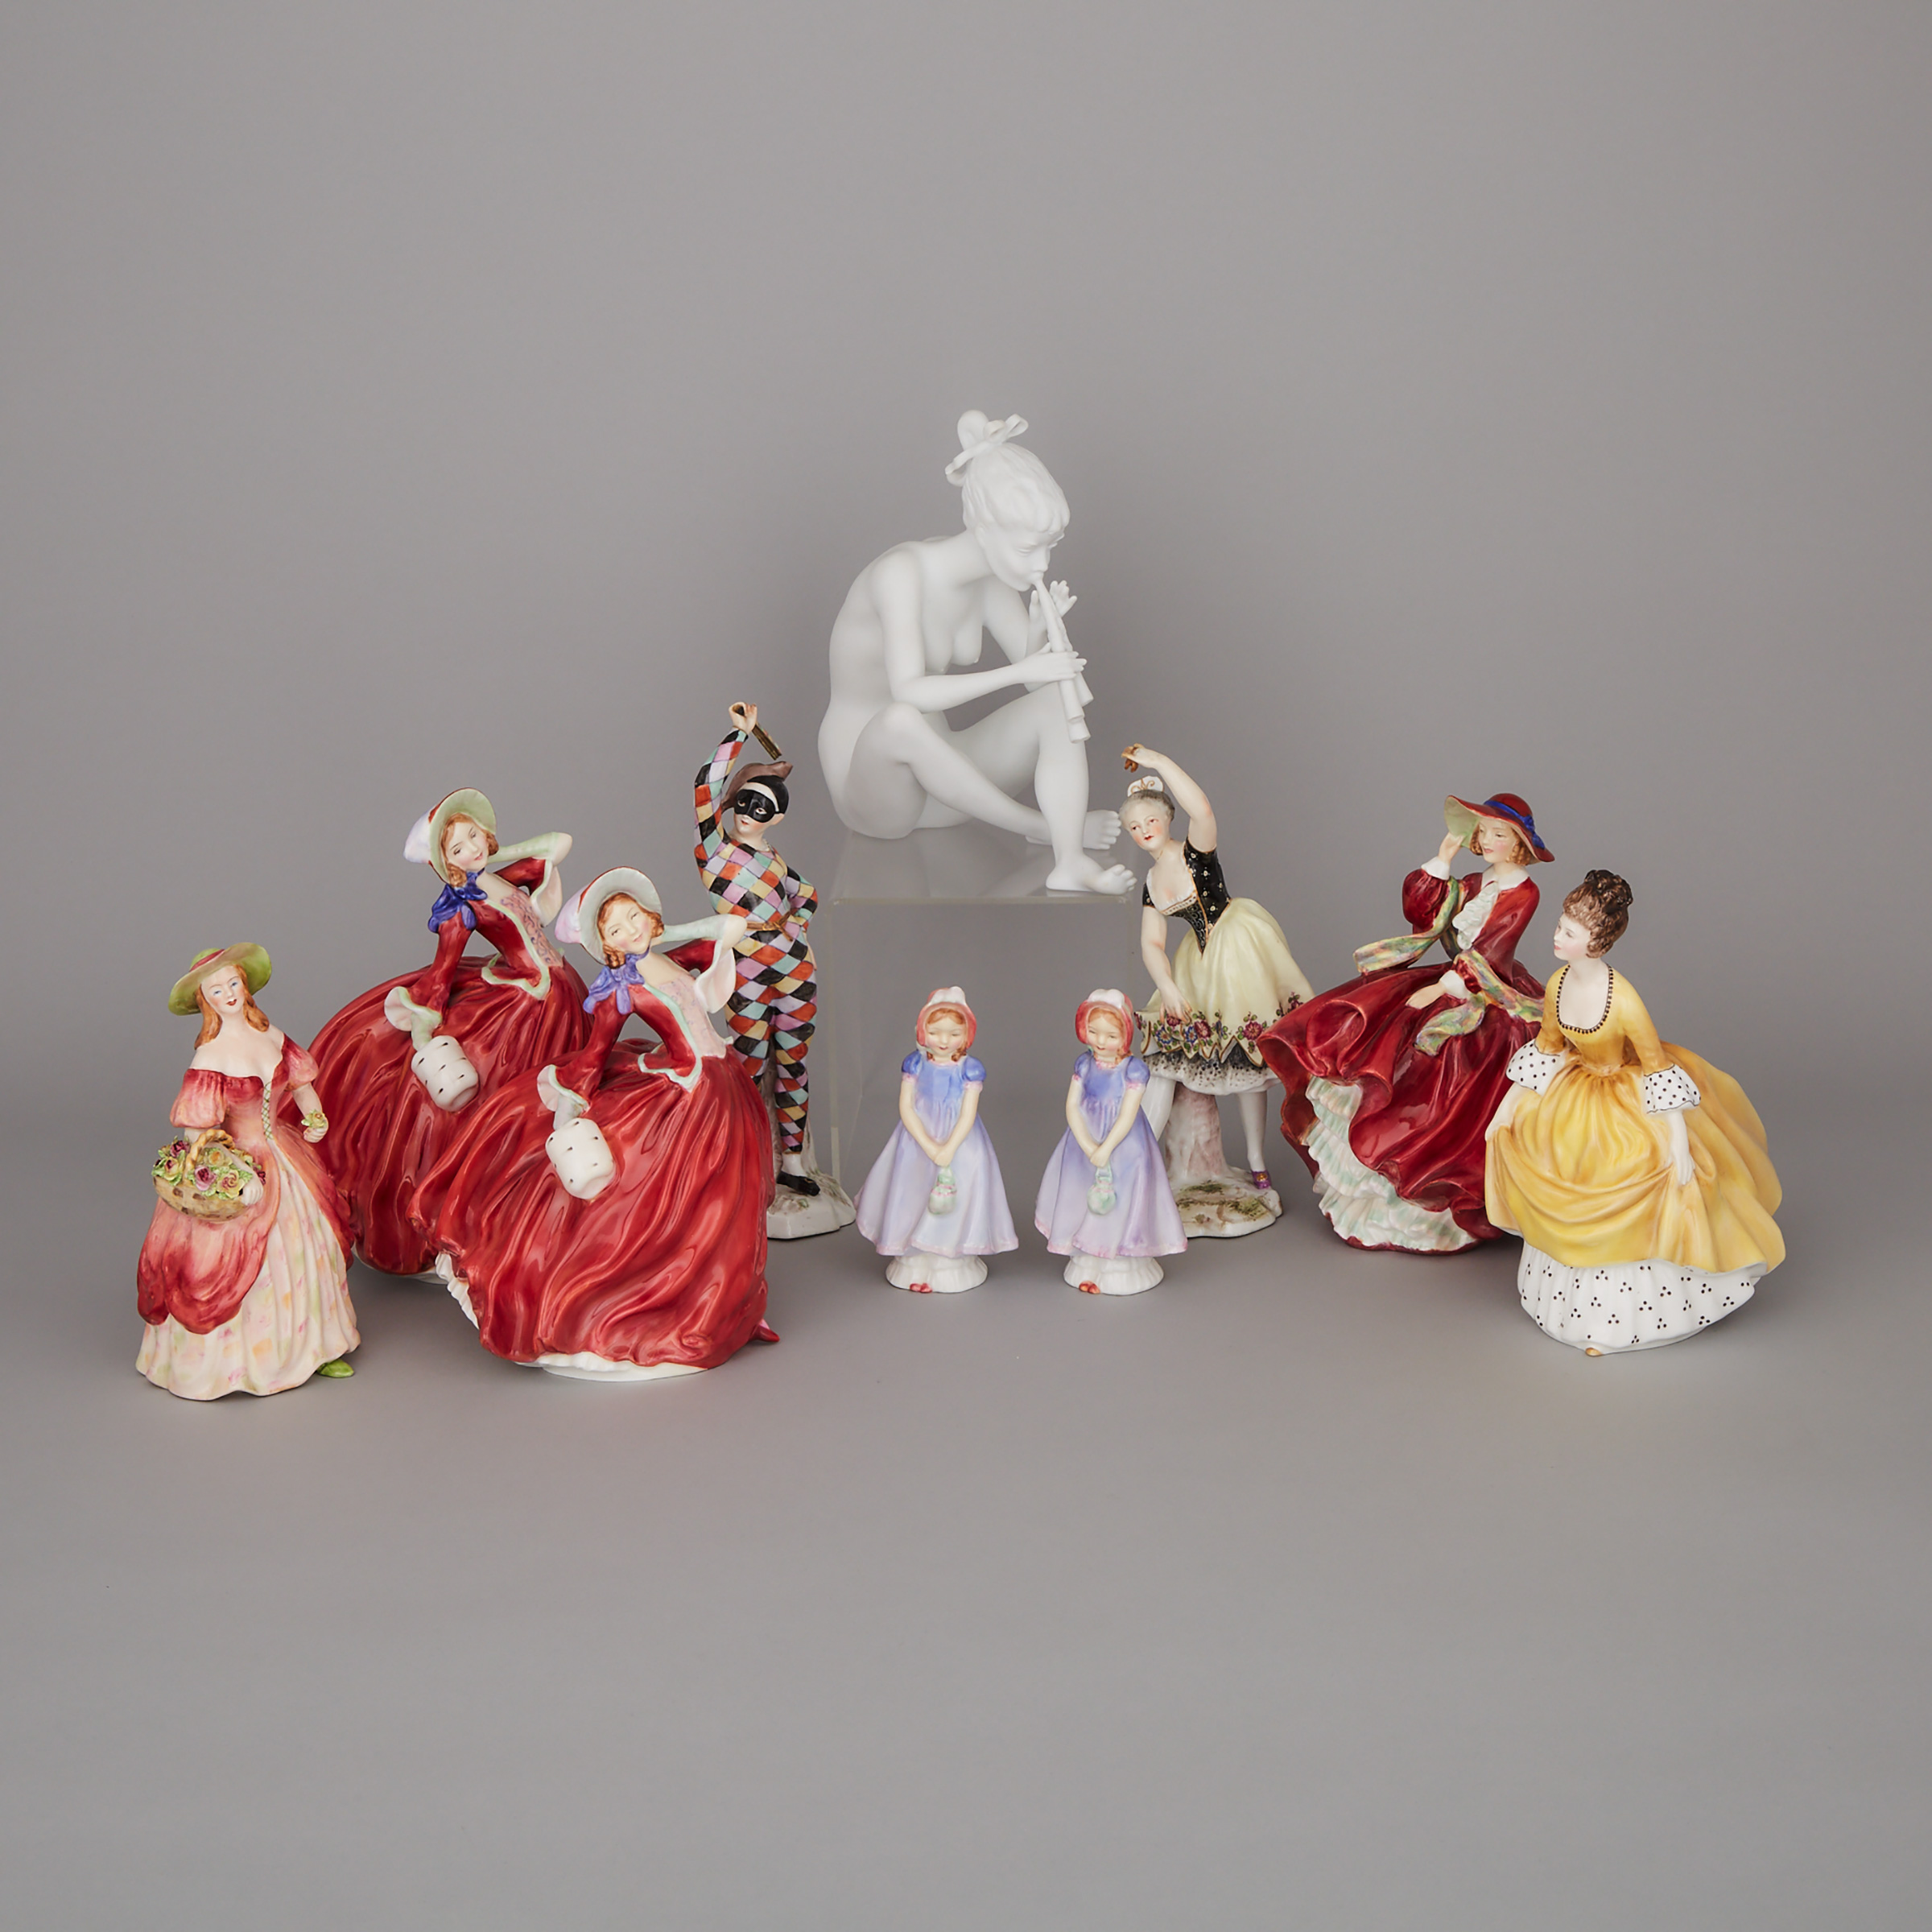 Ten Royal Doulton, Adderley, and Continental Porcelain Figures, 20th century